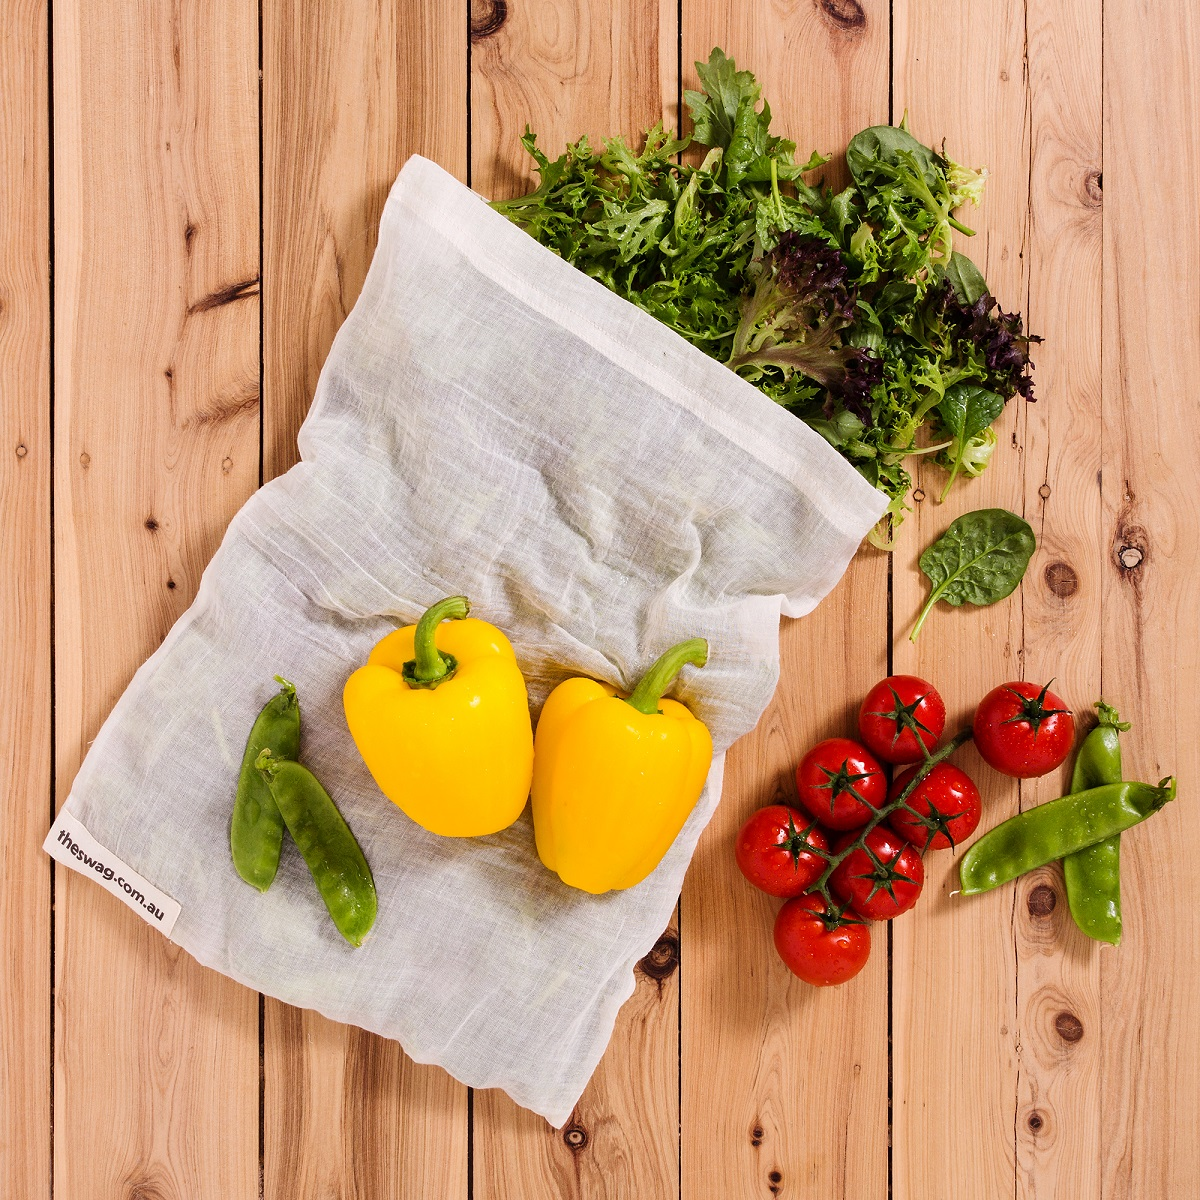 Swag reusable produce bag for your fruit and vegetables - ditch the soft clingy plastic bags and go plastic free!